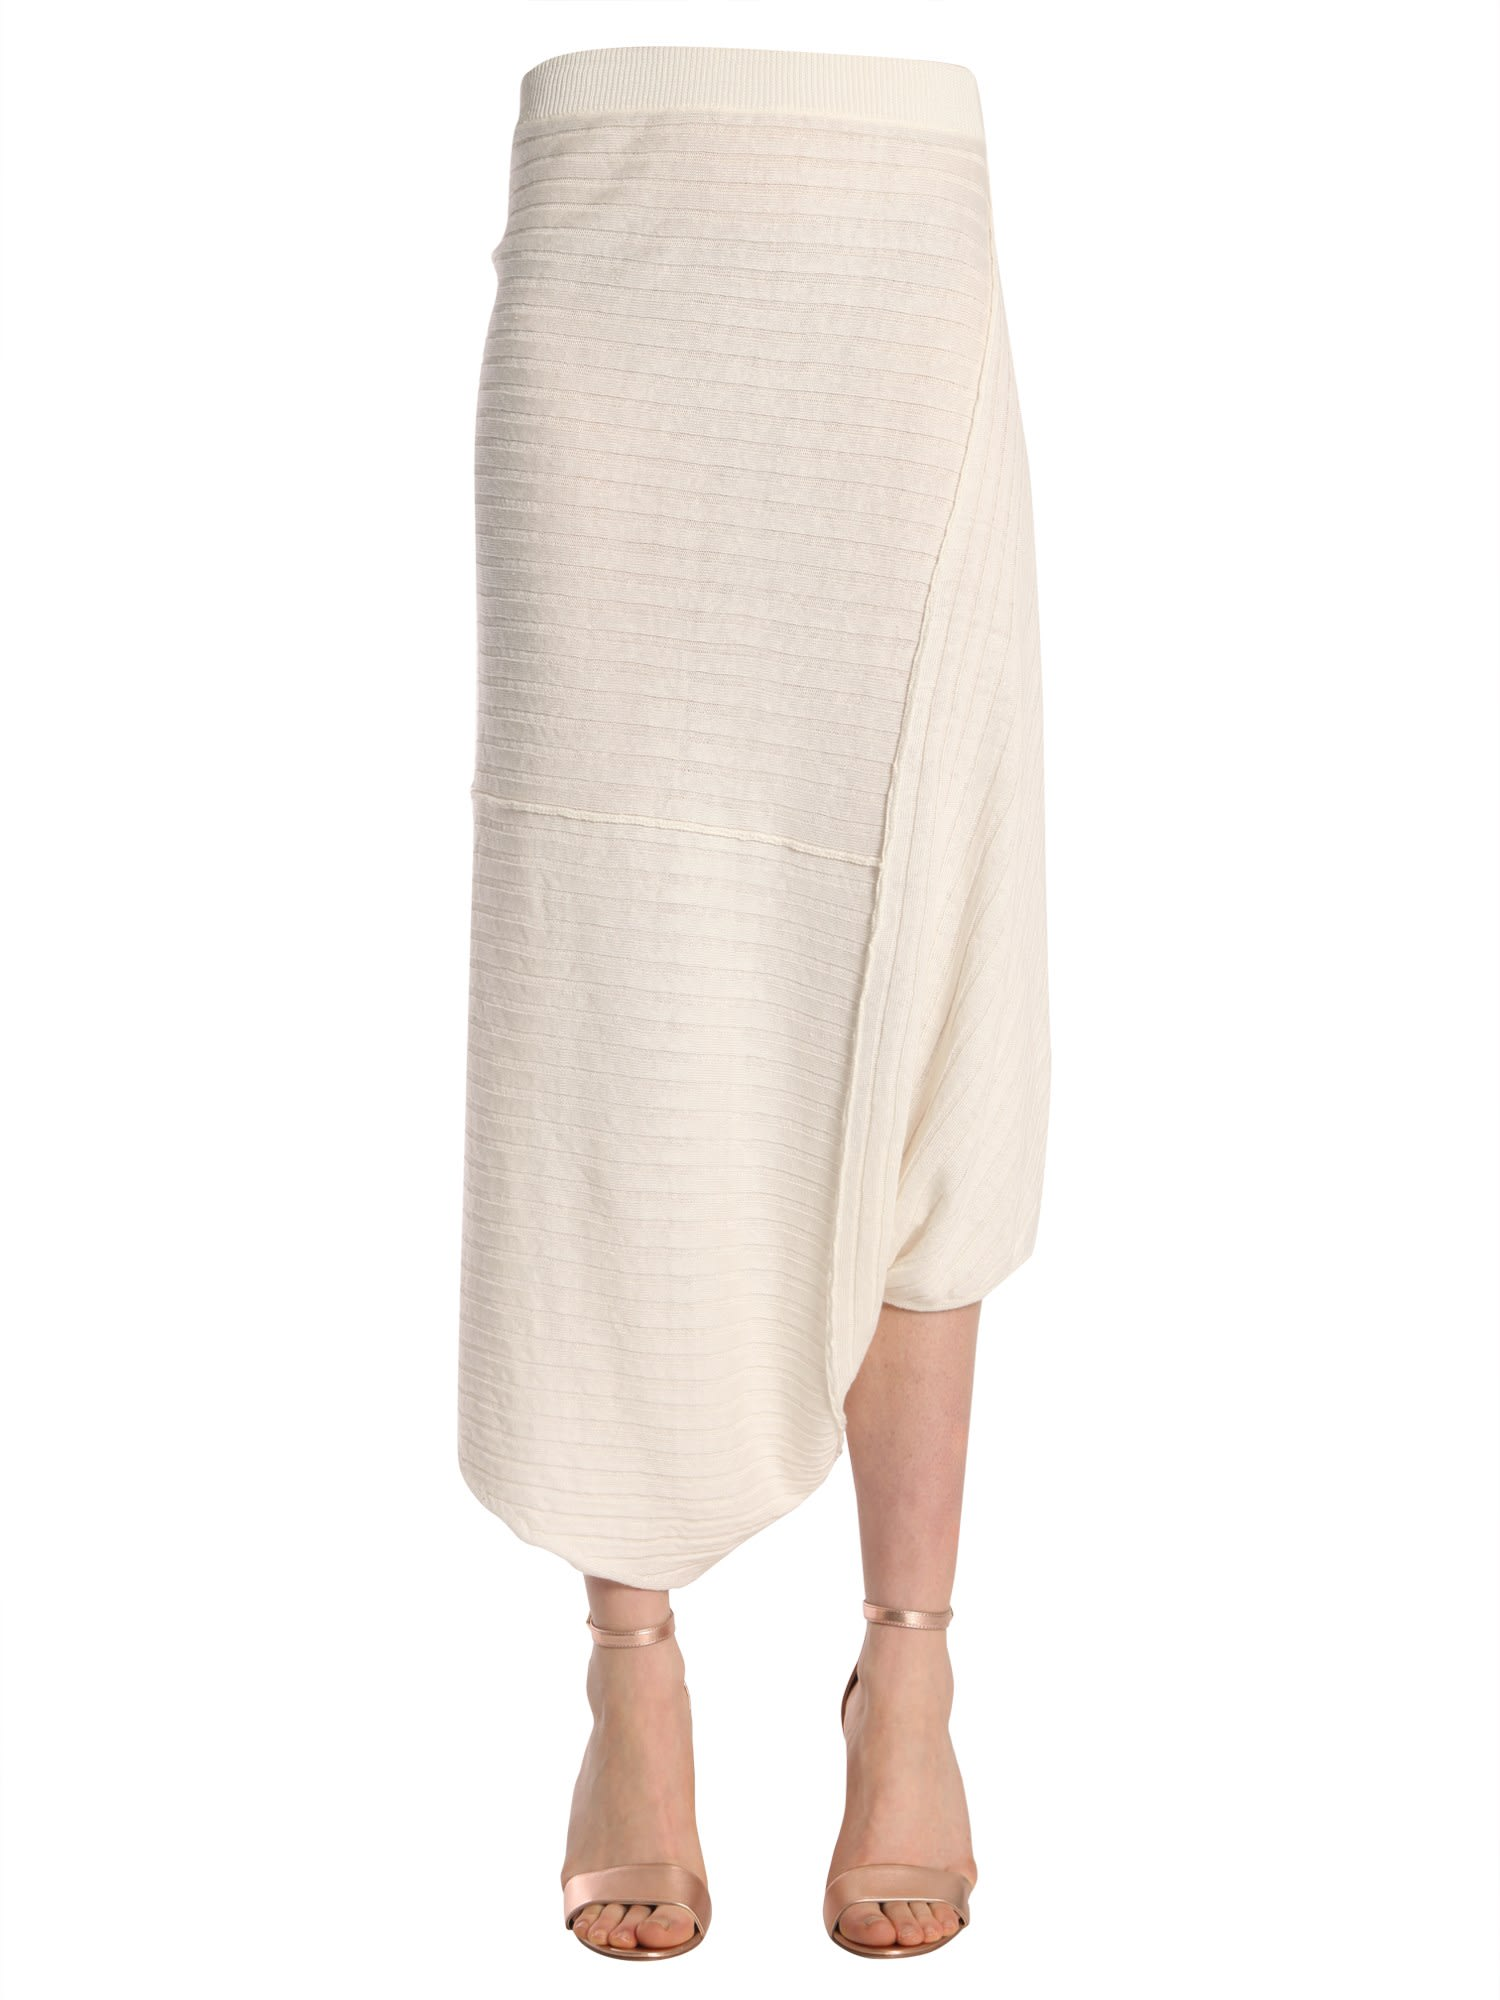 J.W. Anderson Infinity Skirt